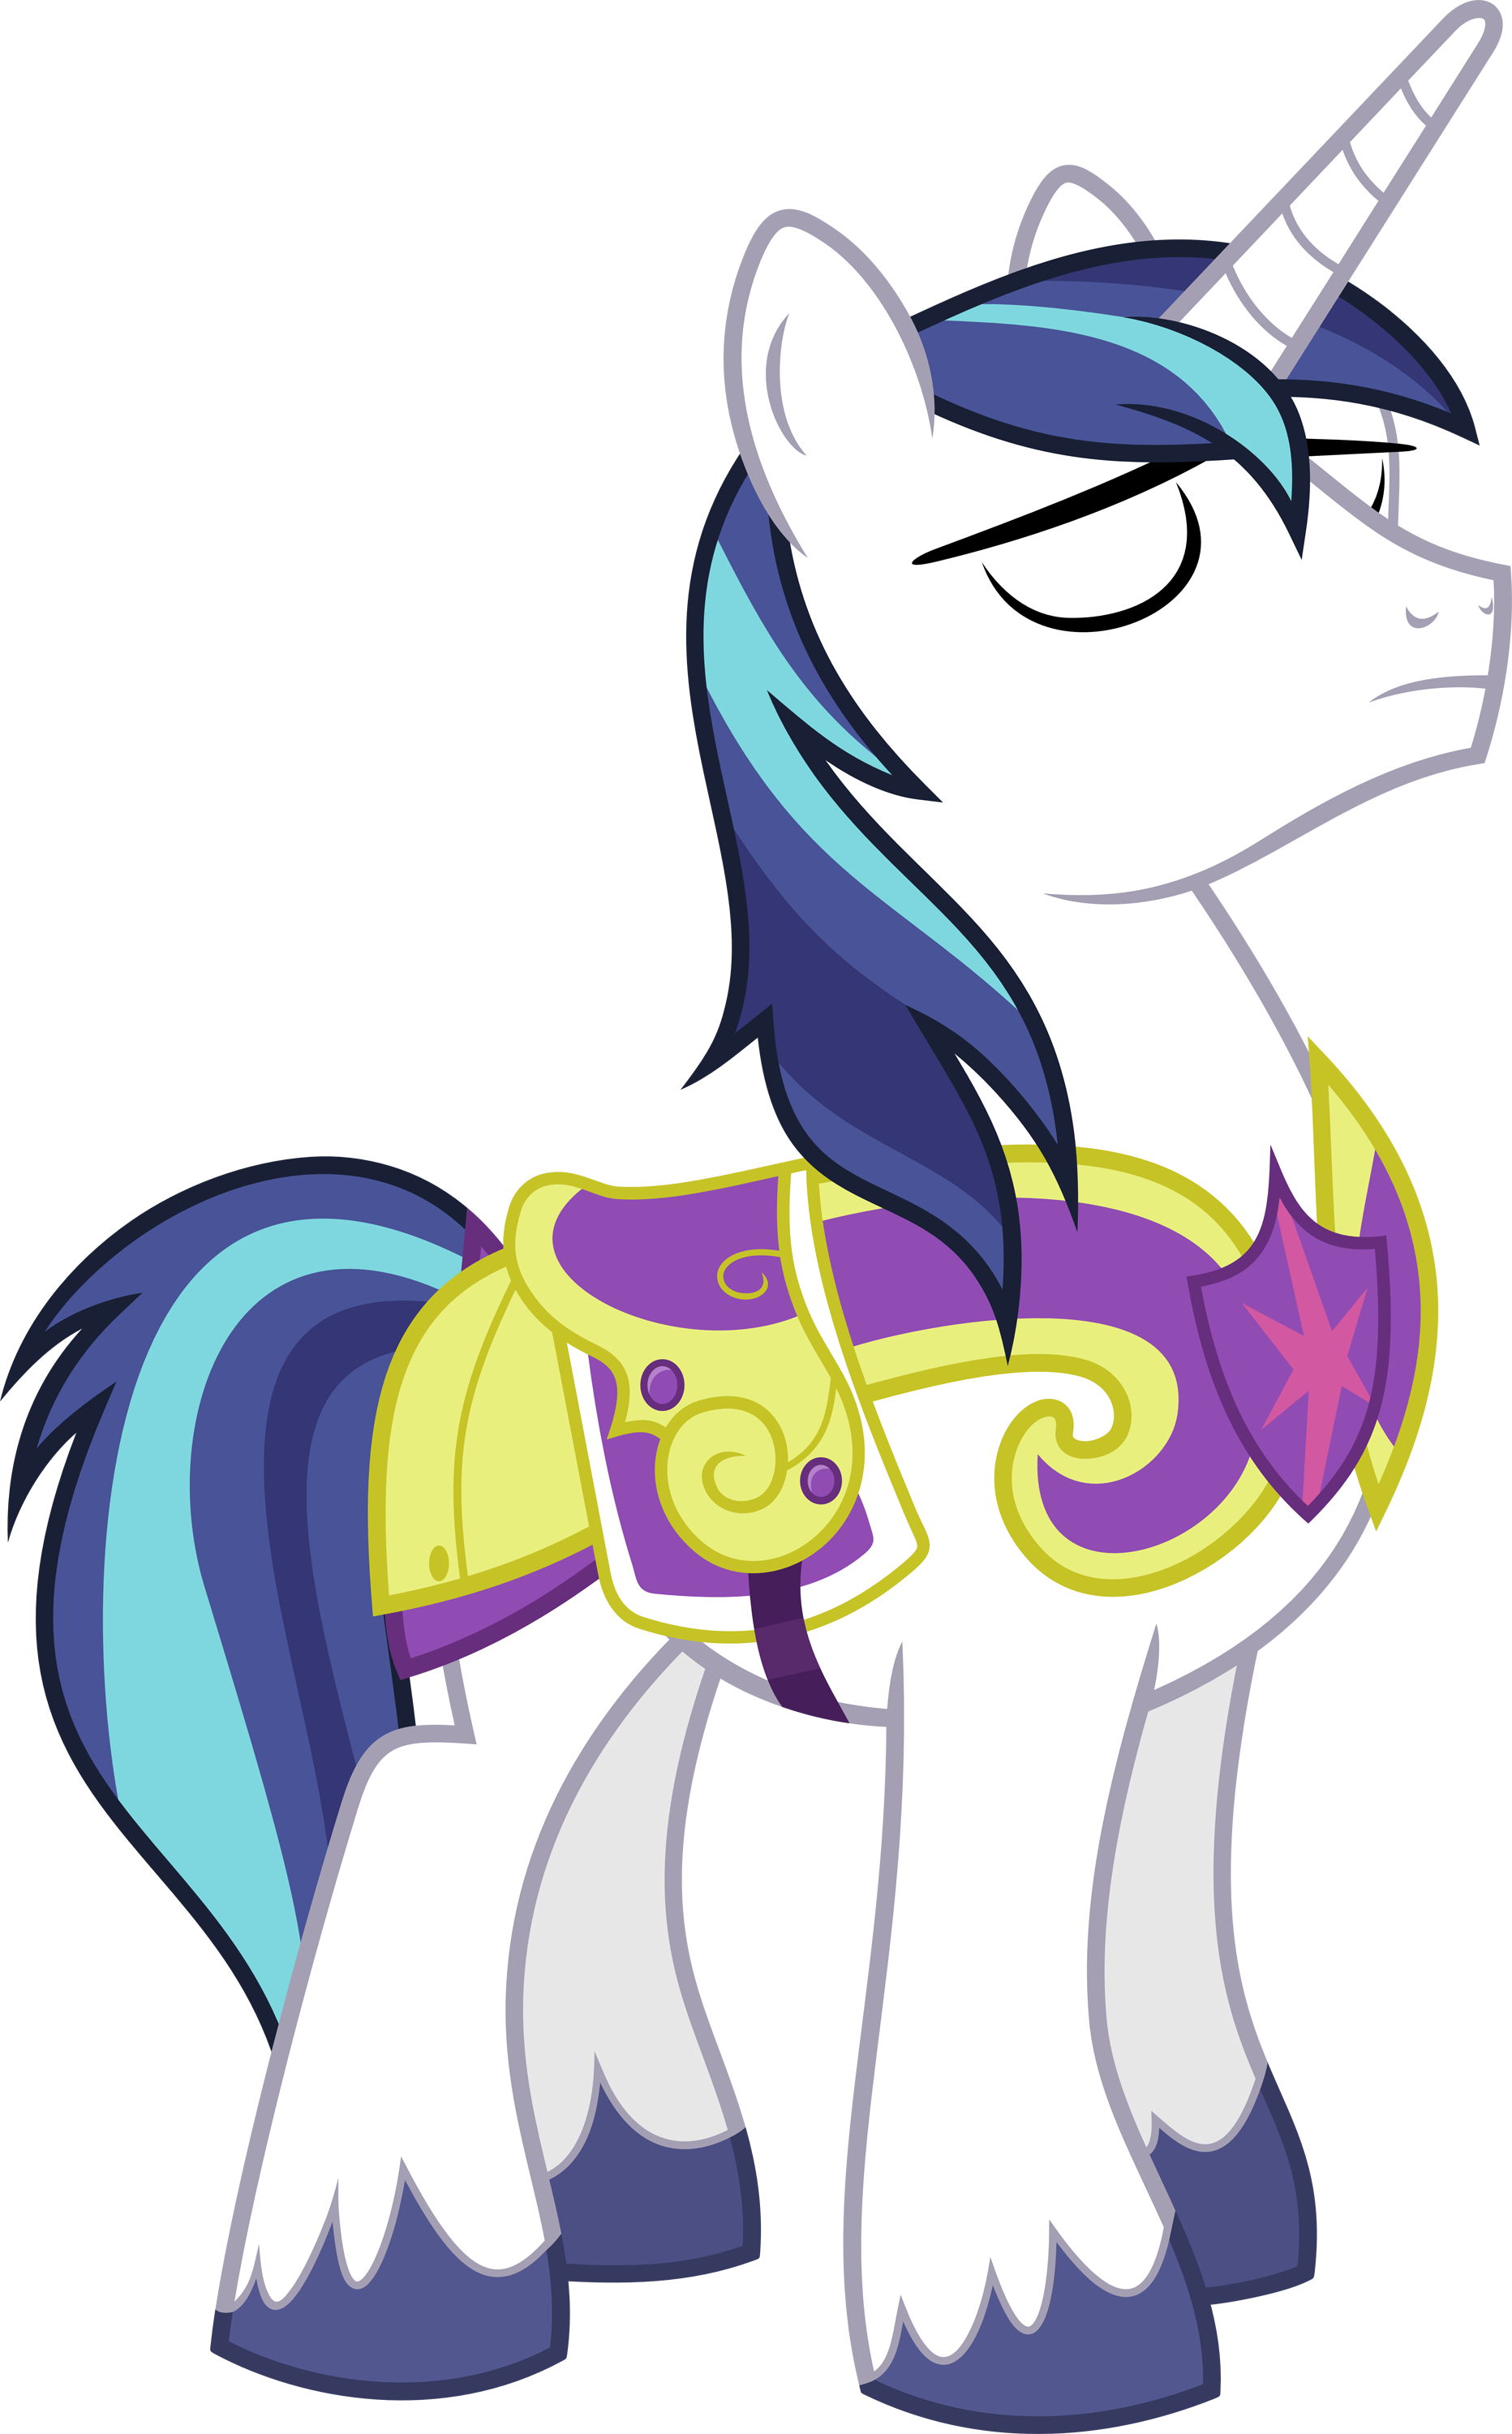 Proud clipart proud man. Image shining armor by